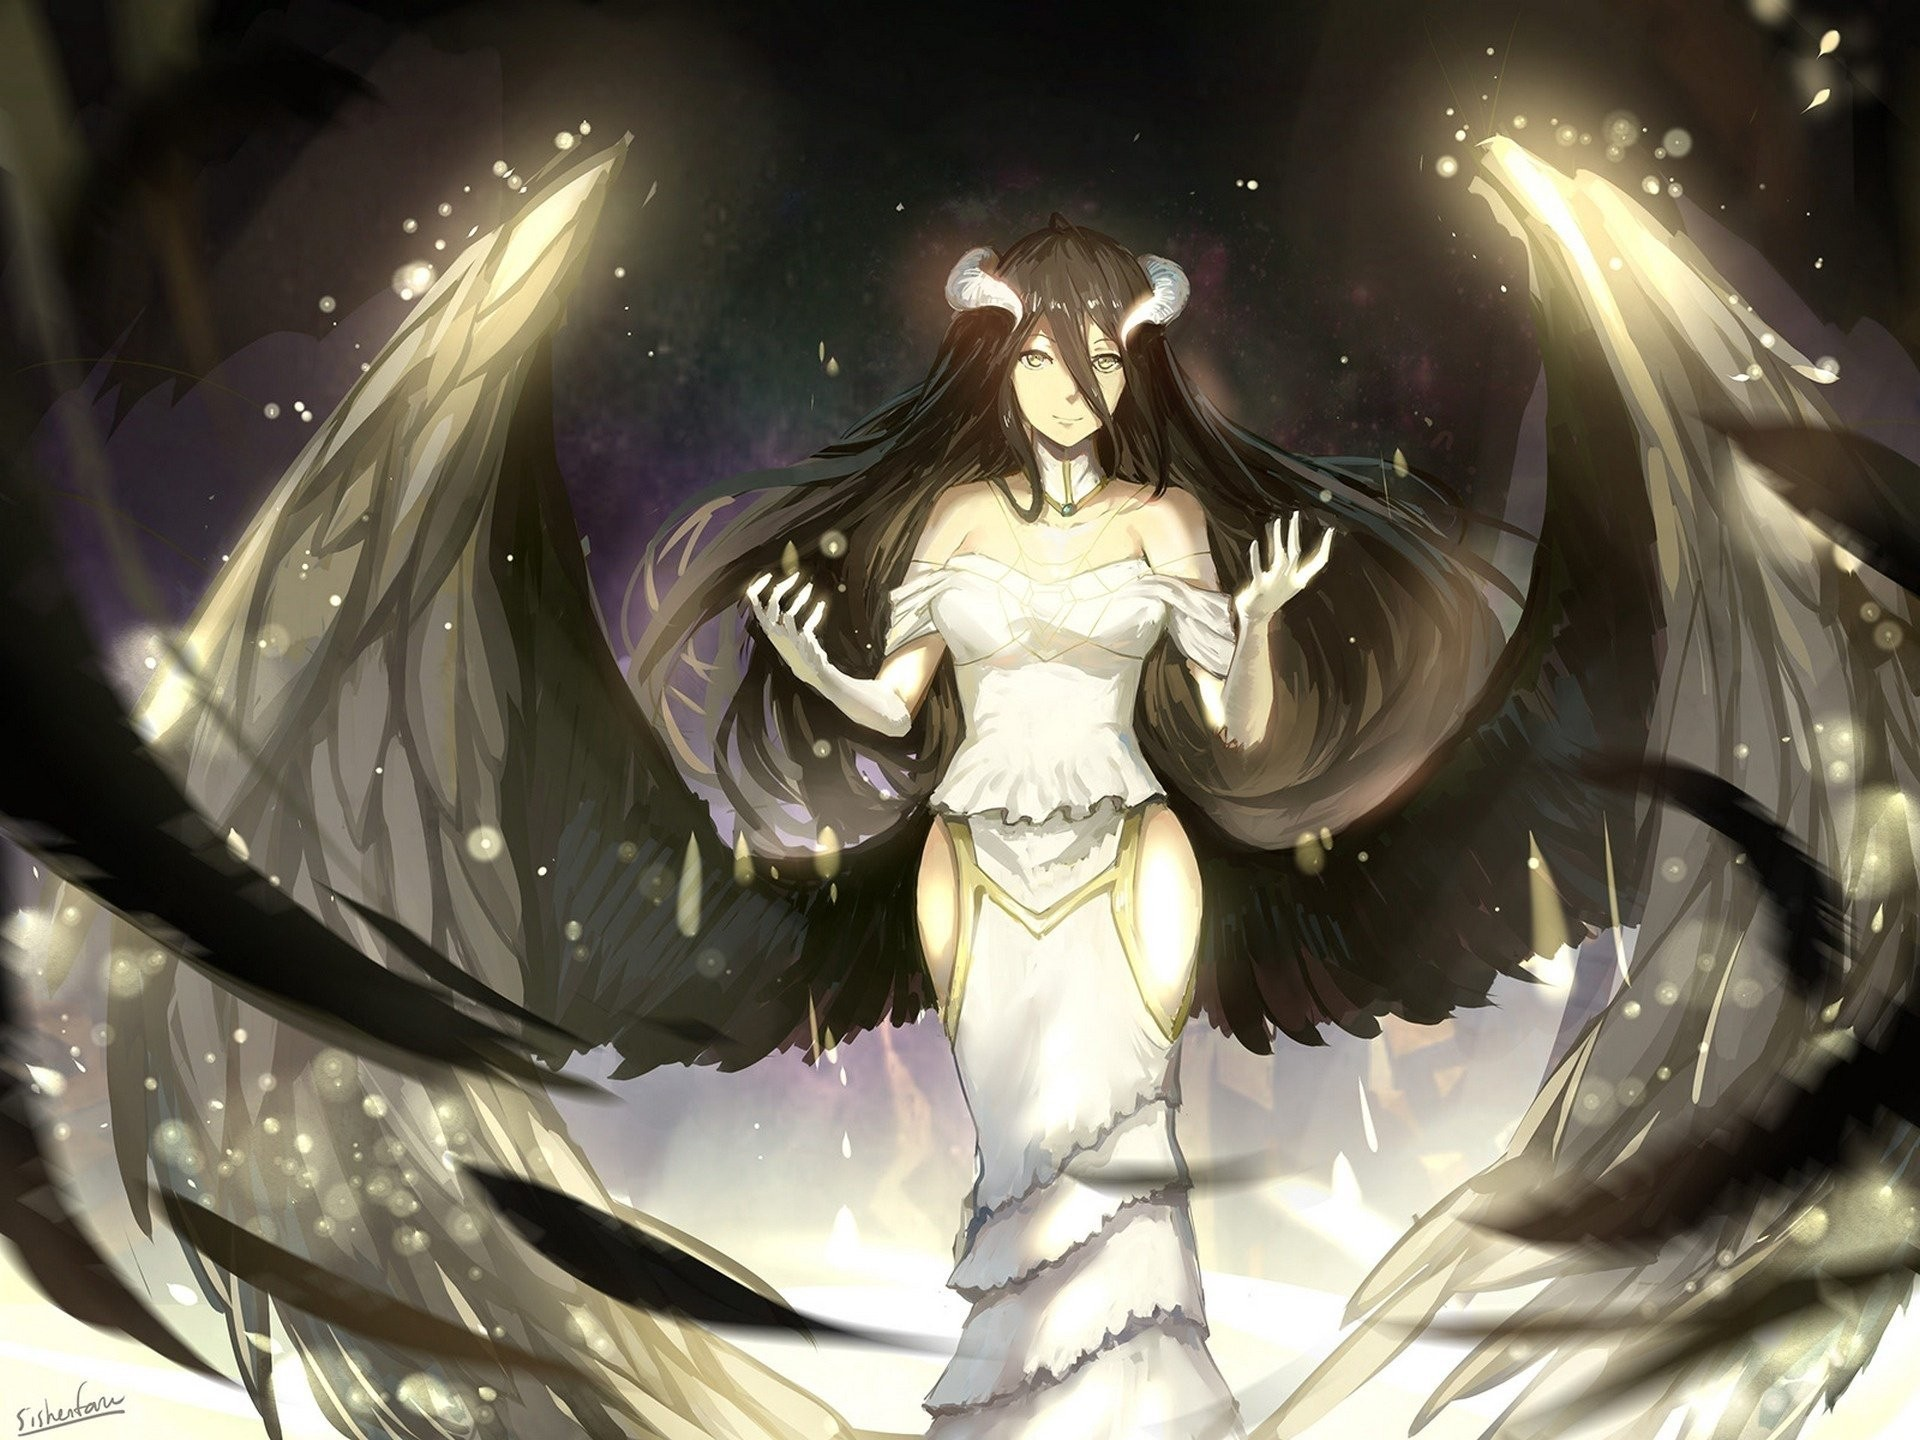 Overlord anime wallpaper download free stunning - Anime male wallpaper hd ...